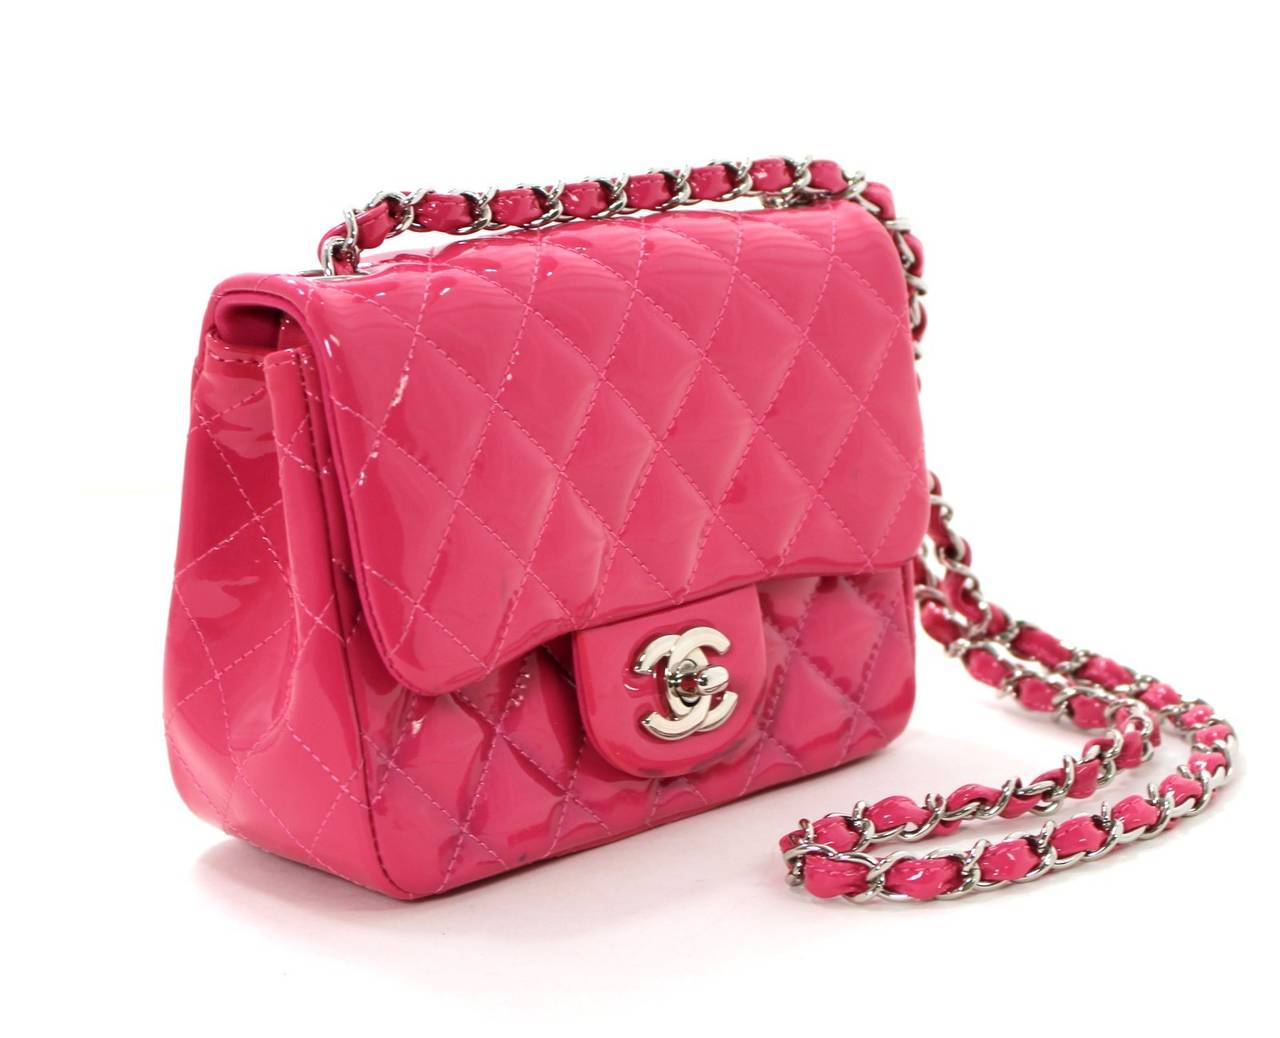 Chanel Pink Patent Mini Classic Flap Bag with Silver HW at 1stdibs